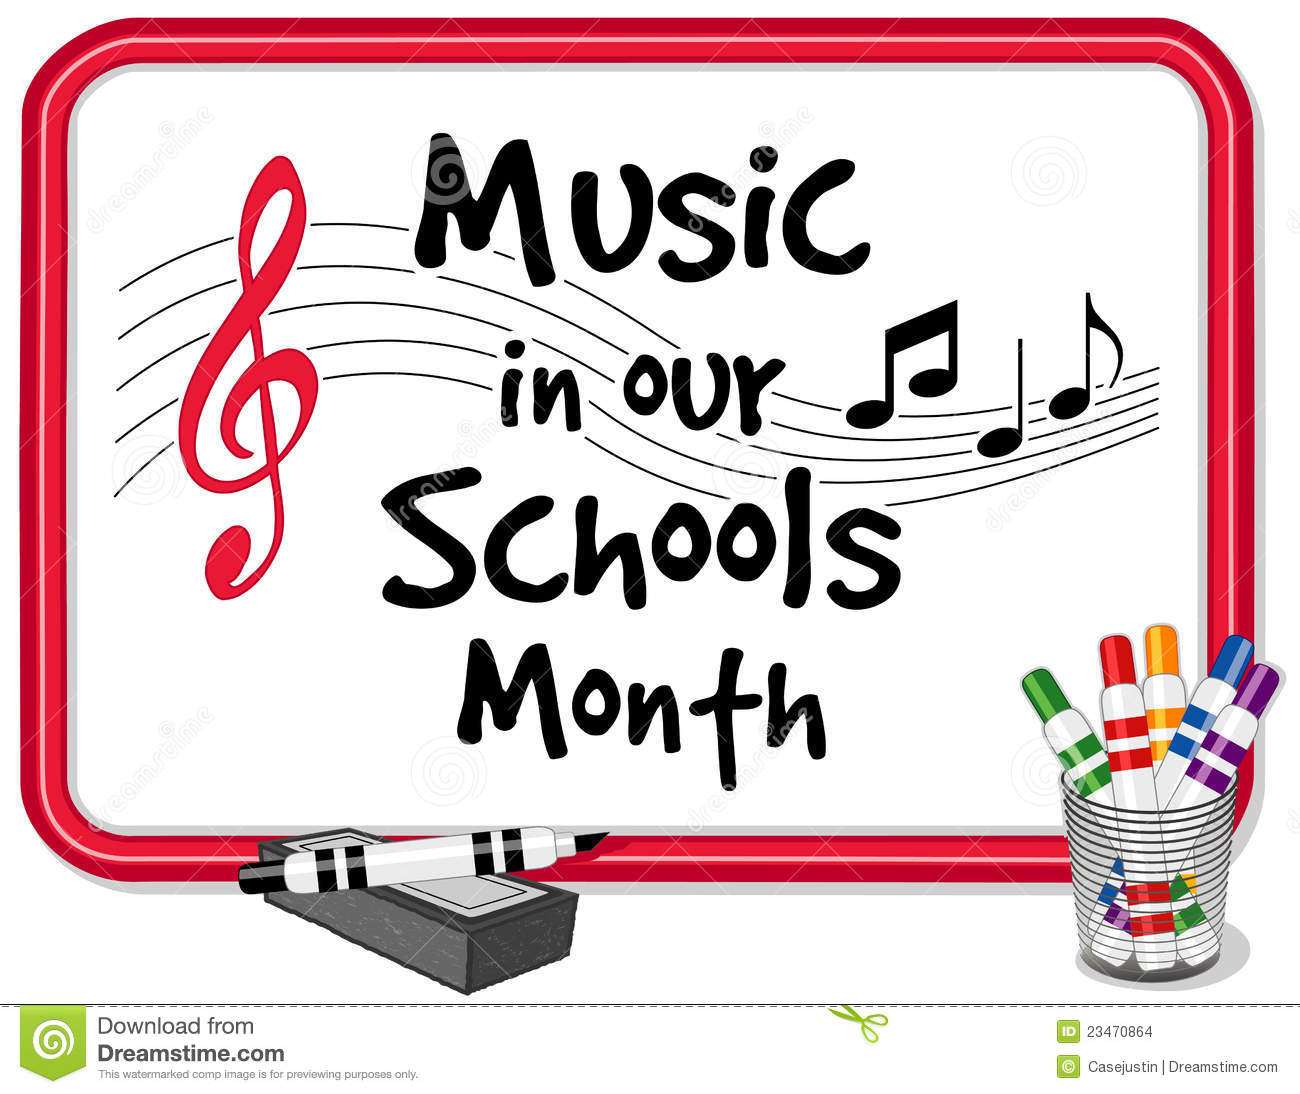 Music In Our Schools Month Whiteboard Stock Images - Image: 23470864